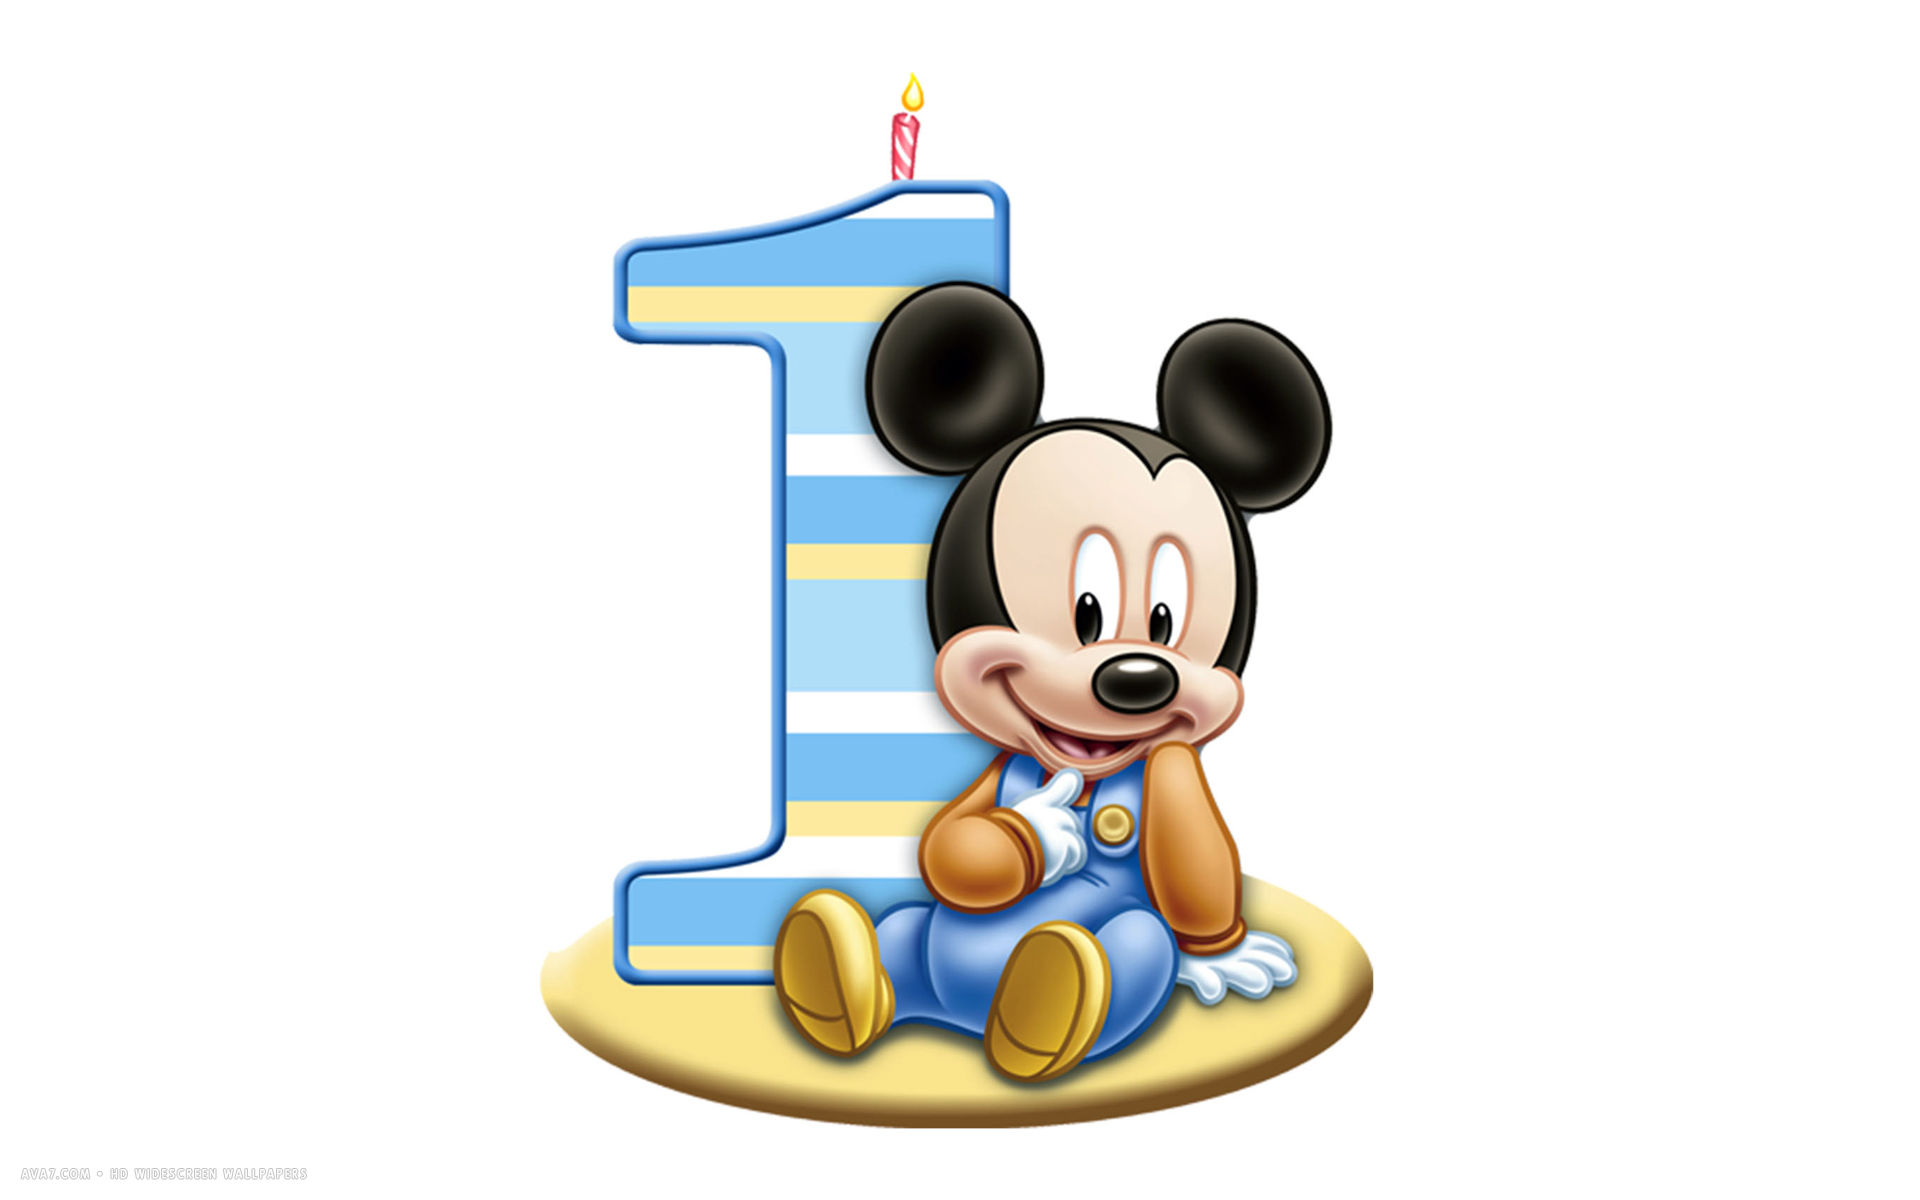 1st birthday clipart ; baby-mickey-mouse-1st-birthday-clip-art-xigpGKg6T